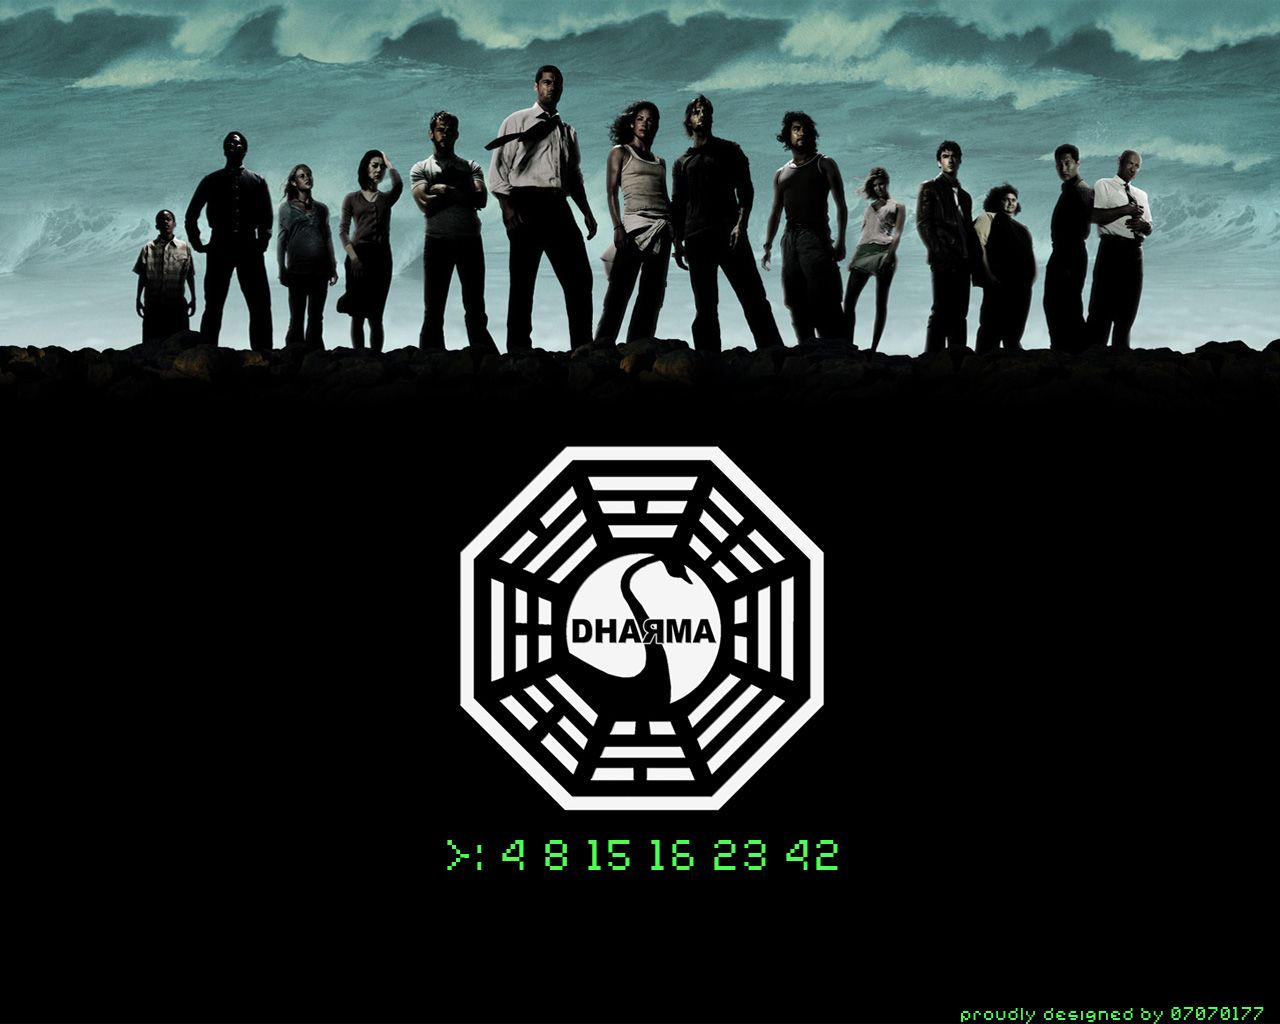 Lost Numbers 4 8 15 16 23 42 Dharma Dharma Initiative Full